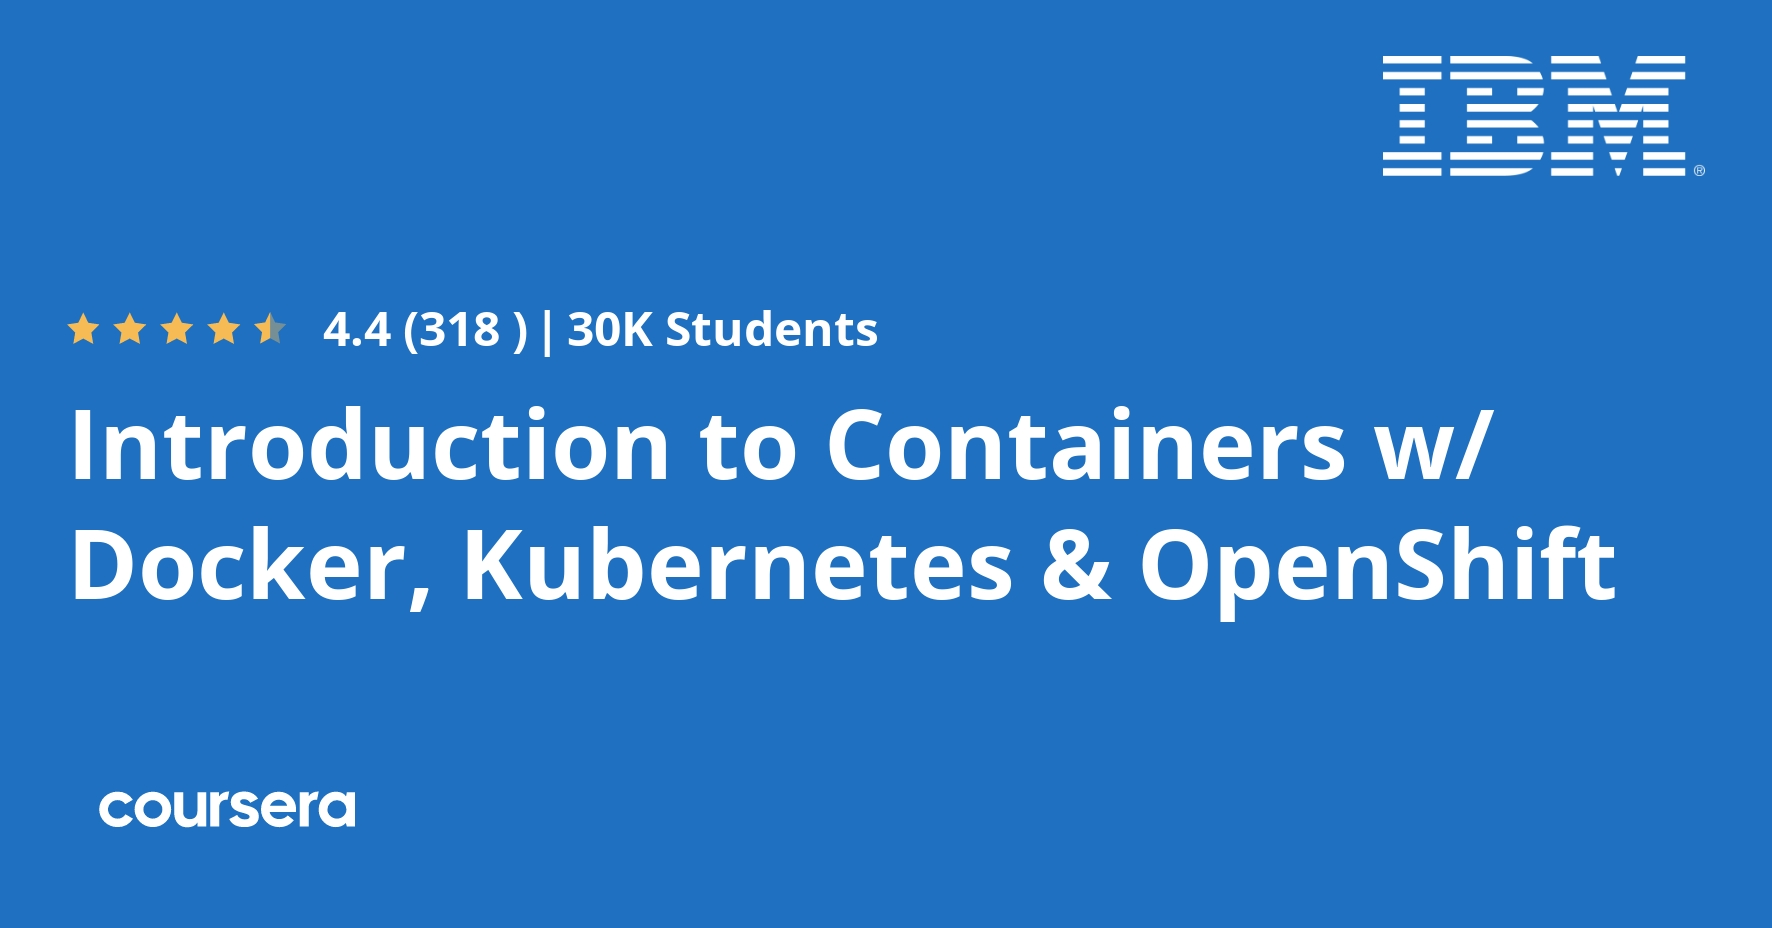 Introduction to Containers w/ Docker, Kubernetes & OpenShift (Coursera)